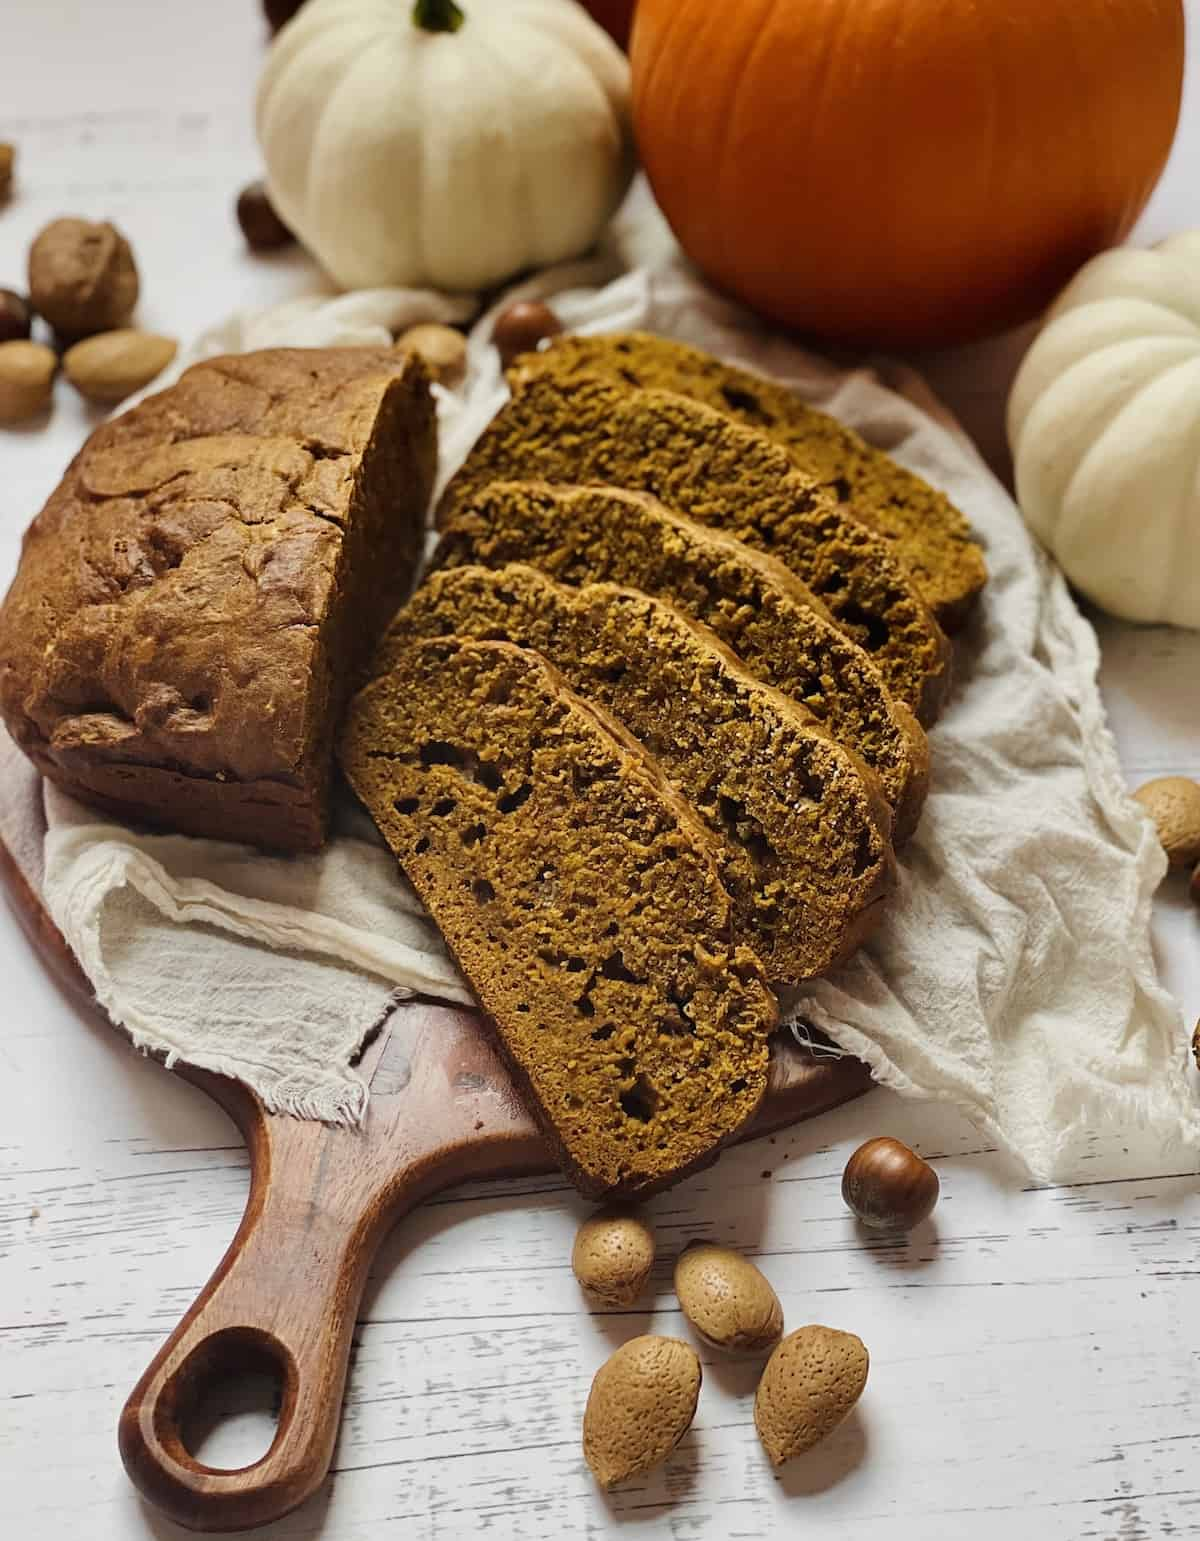 bread machine pumpkin bread sliced on a cutting board surrounded by nuts and pumpkins